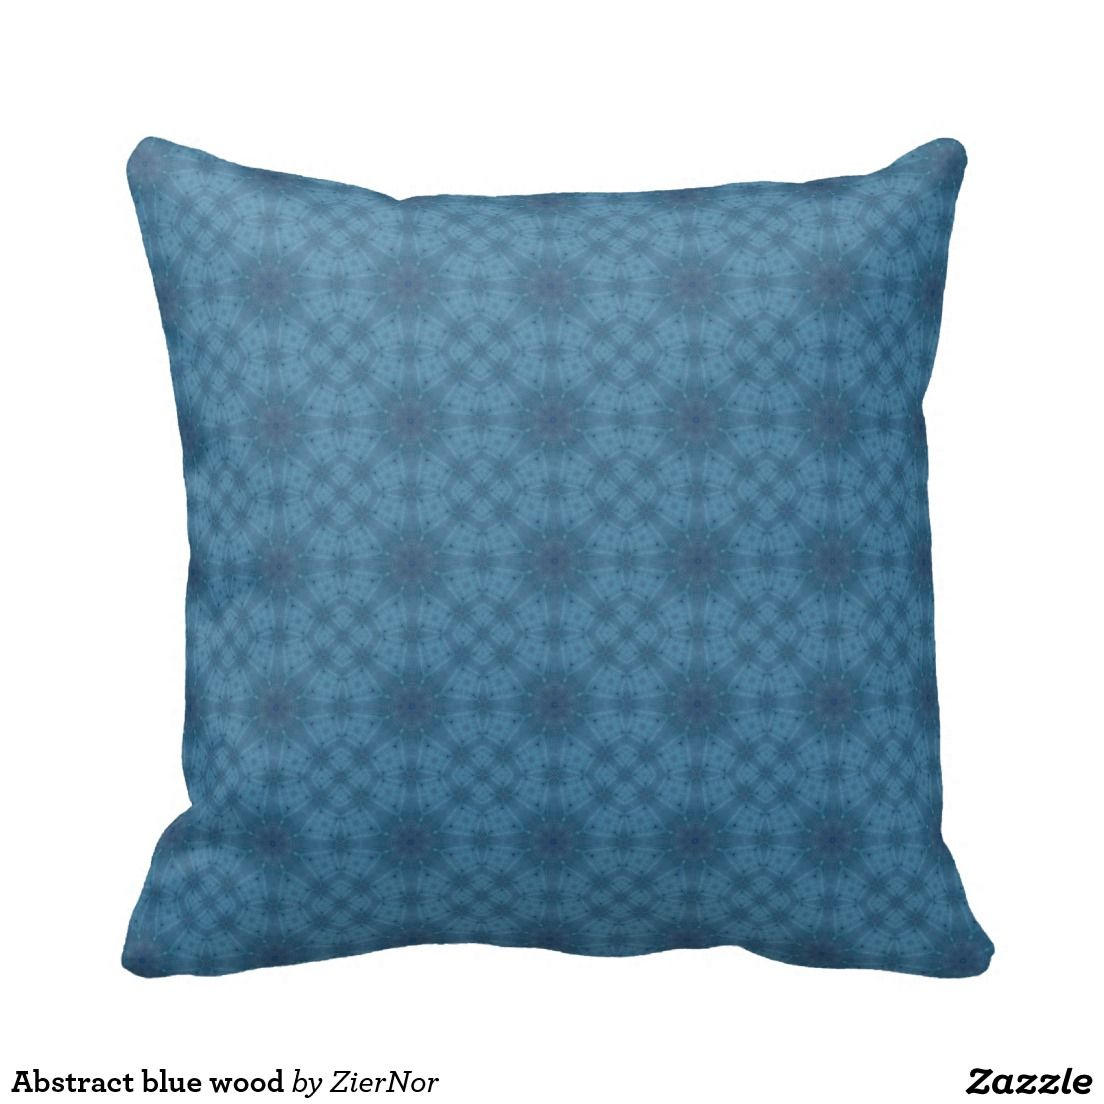 Abstract blue wood throw pillow